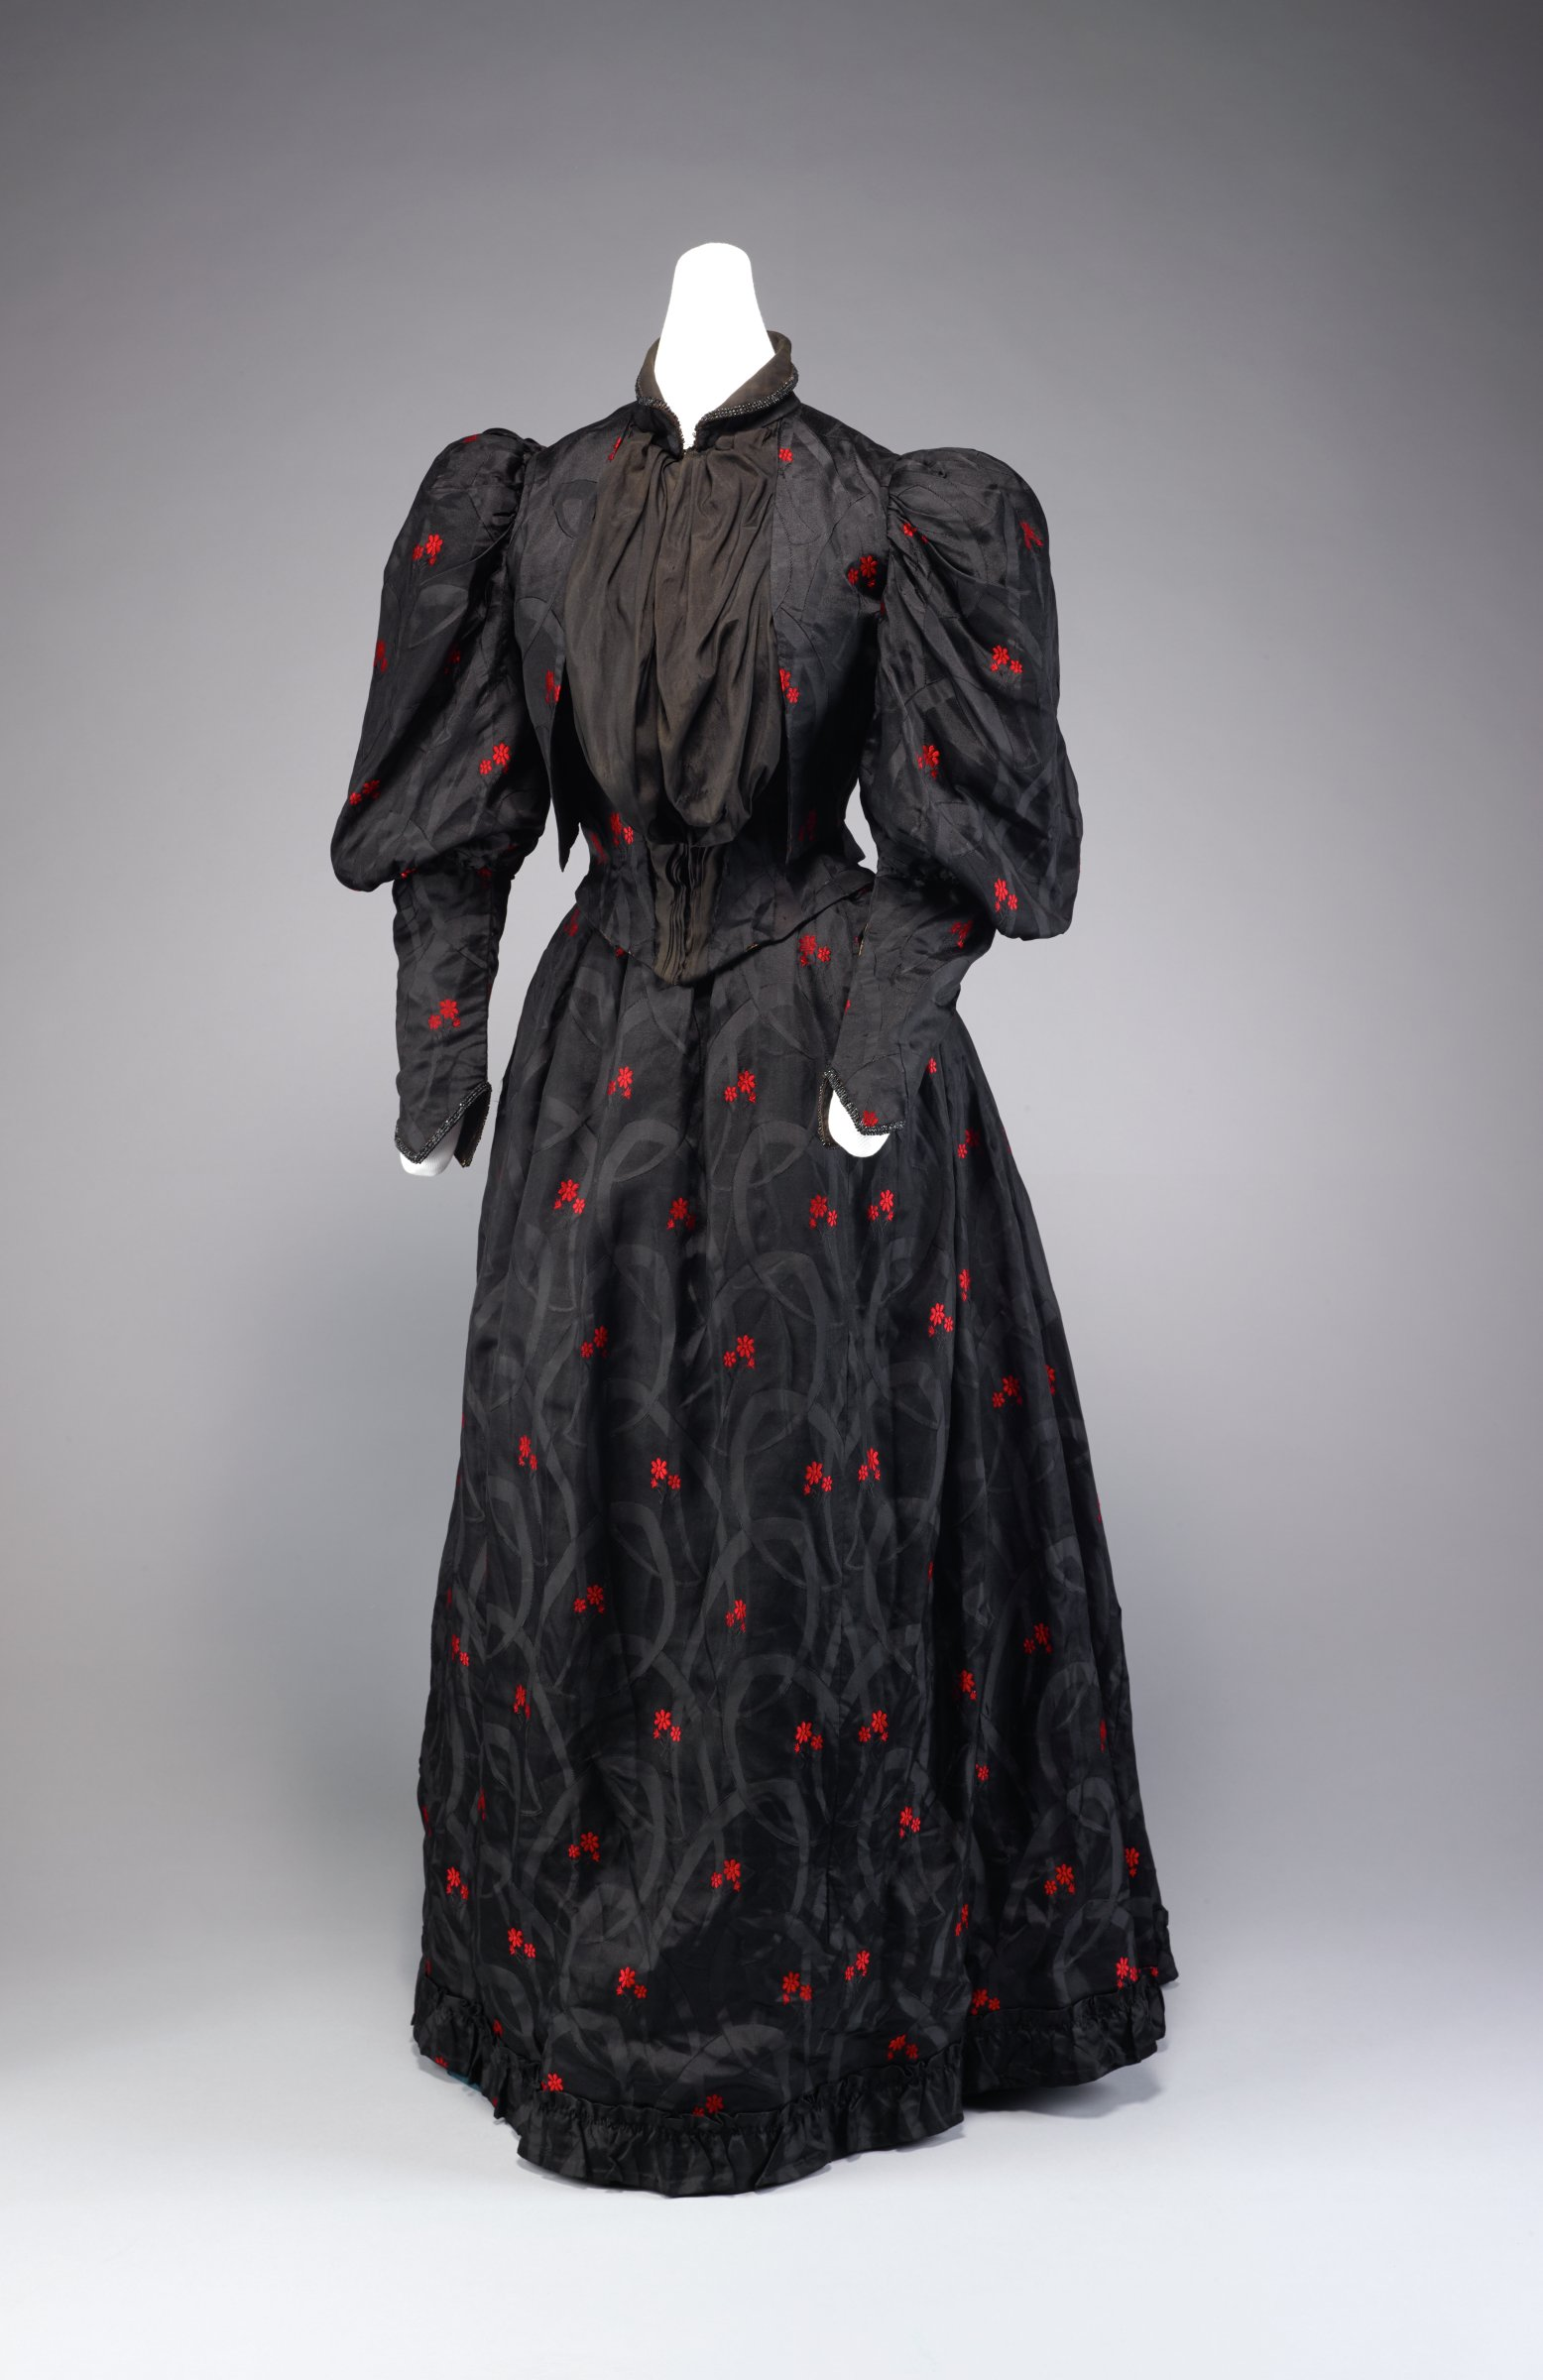 Two-piece black moiré silk dress embroidered with bright red flowers, comprised of bodice and skirt, the bodice with high, stiff, straight collar and loose inset blouse of plain black silk with nipped waist and back tie, with leg-of-mutton sleeves, the tulip bell skirt with ruffled hem, the back gathered at the waist and with a slight train.